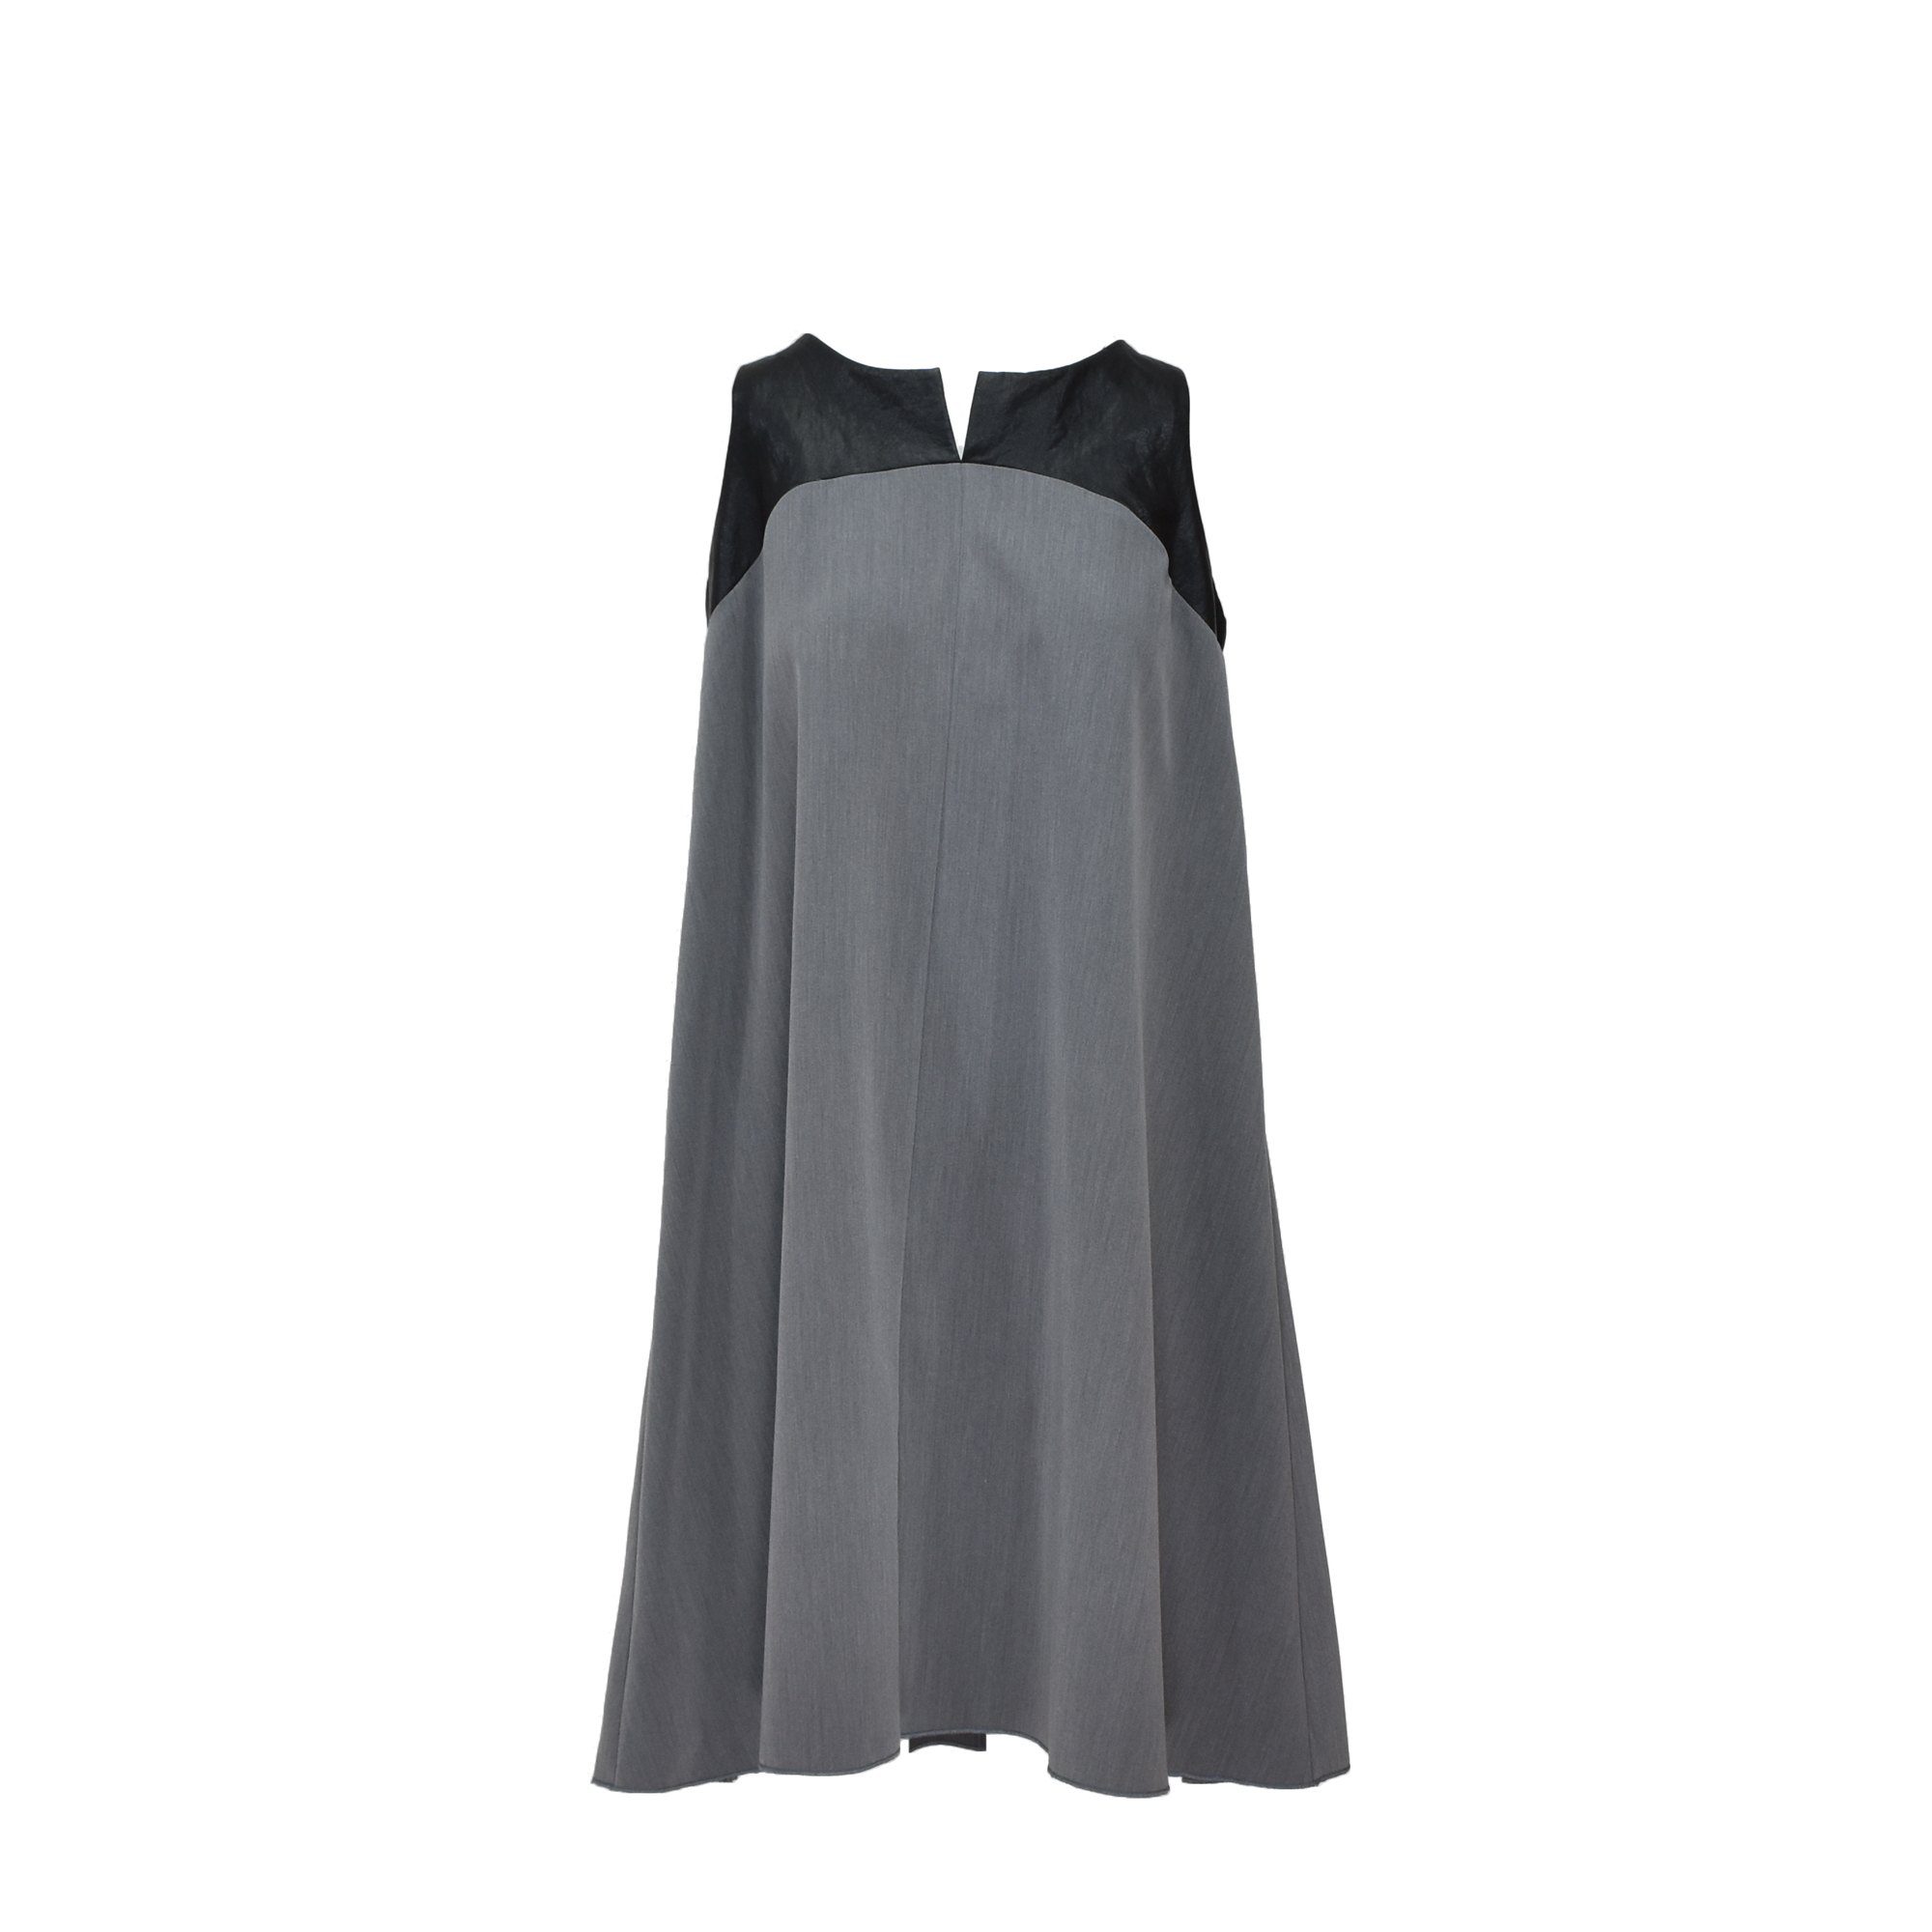 LOTUS EATERS DRESS - BENNO GREY